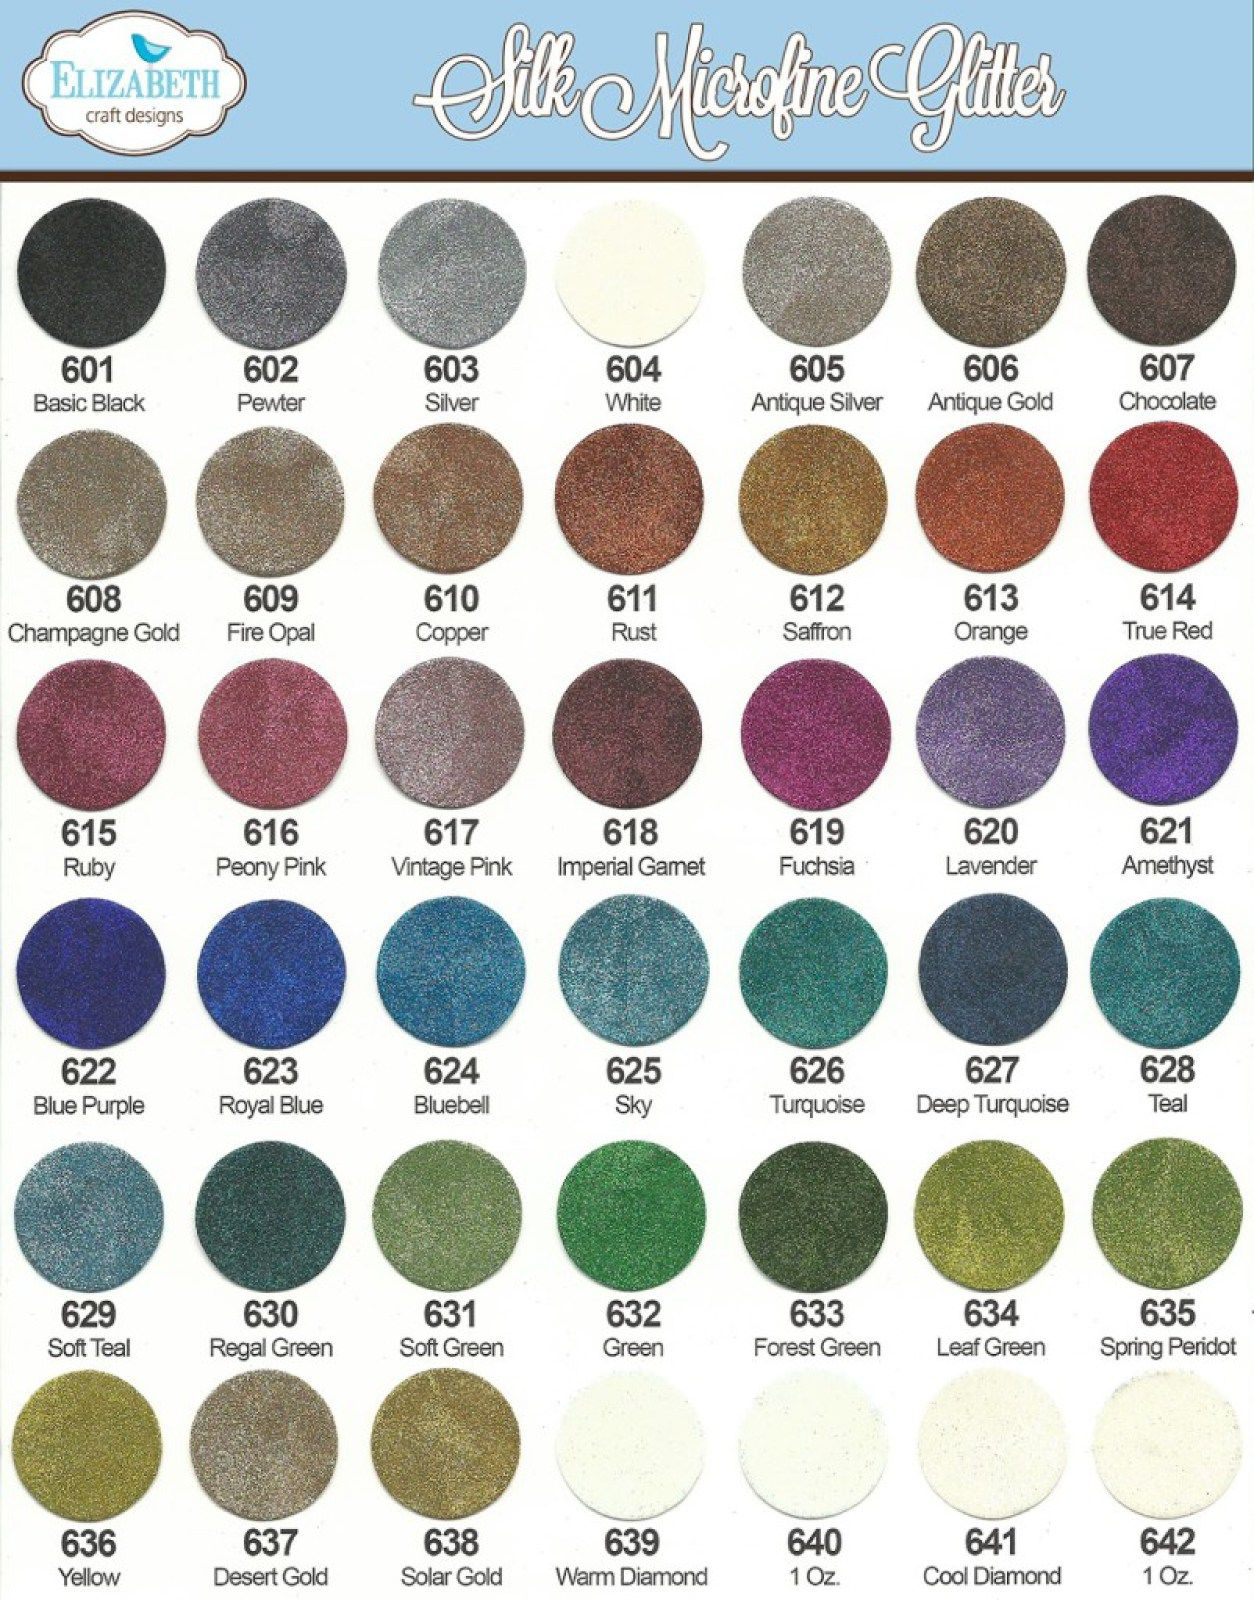 Silk Microfine Glitters Color Charts Pinterest Elizabeth Craft